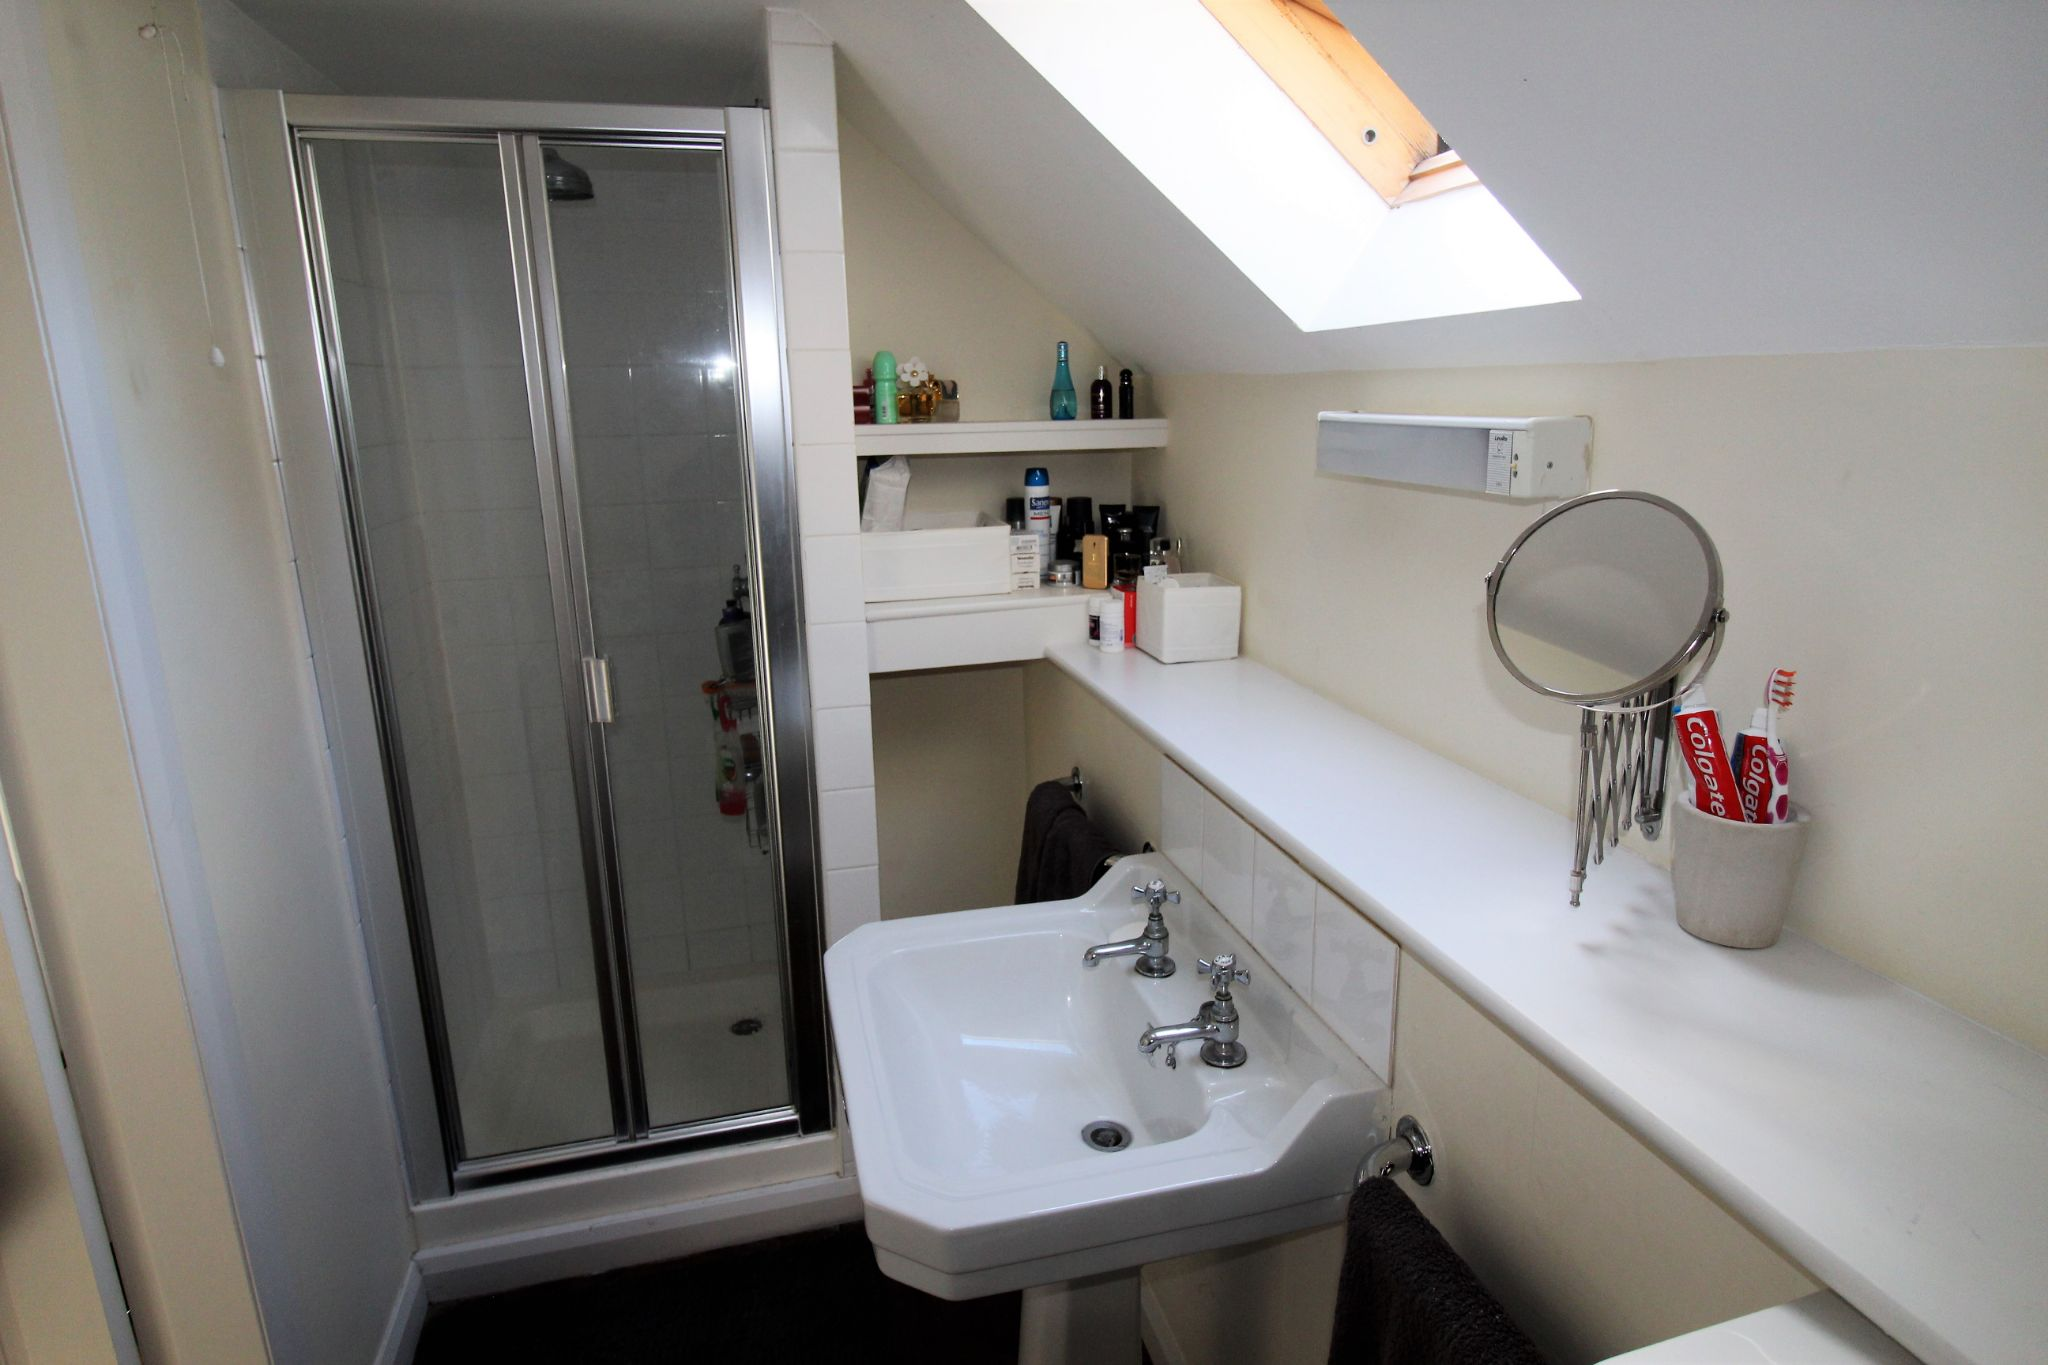 3 bedroom detached house Let in Brighouse - En-suite